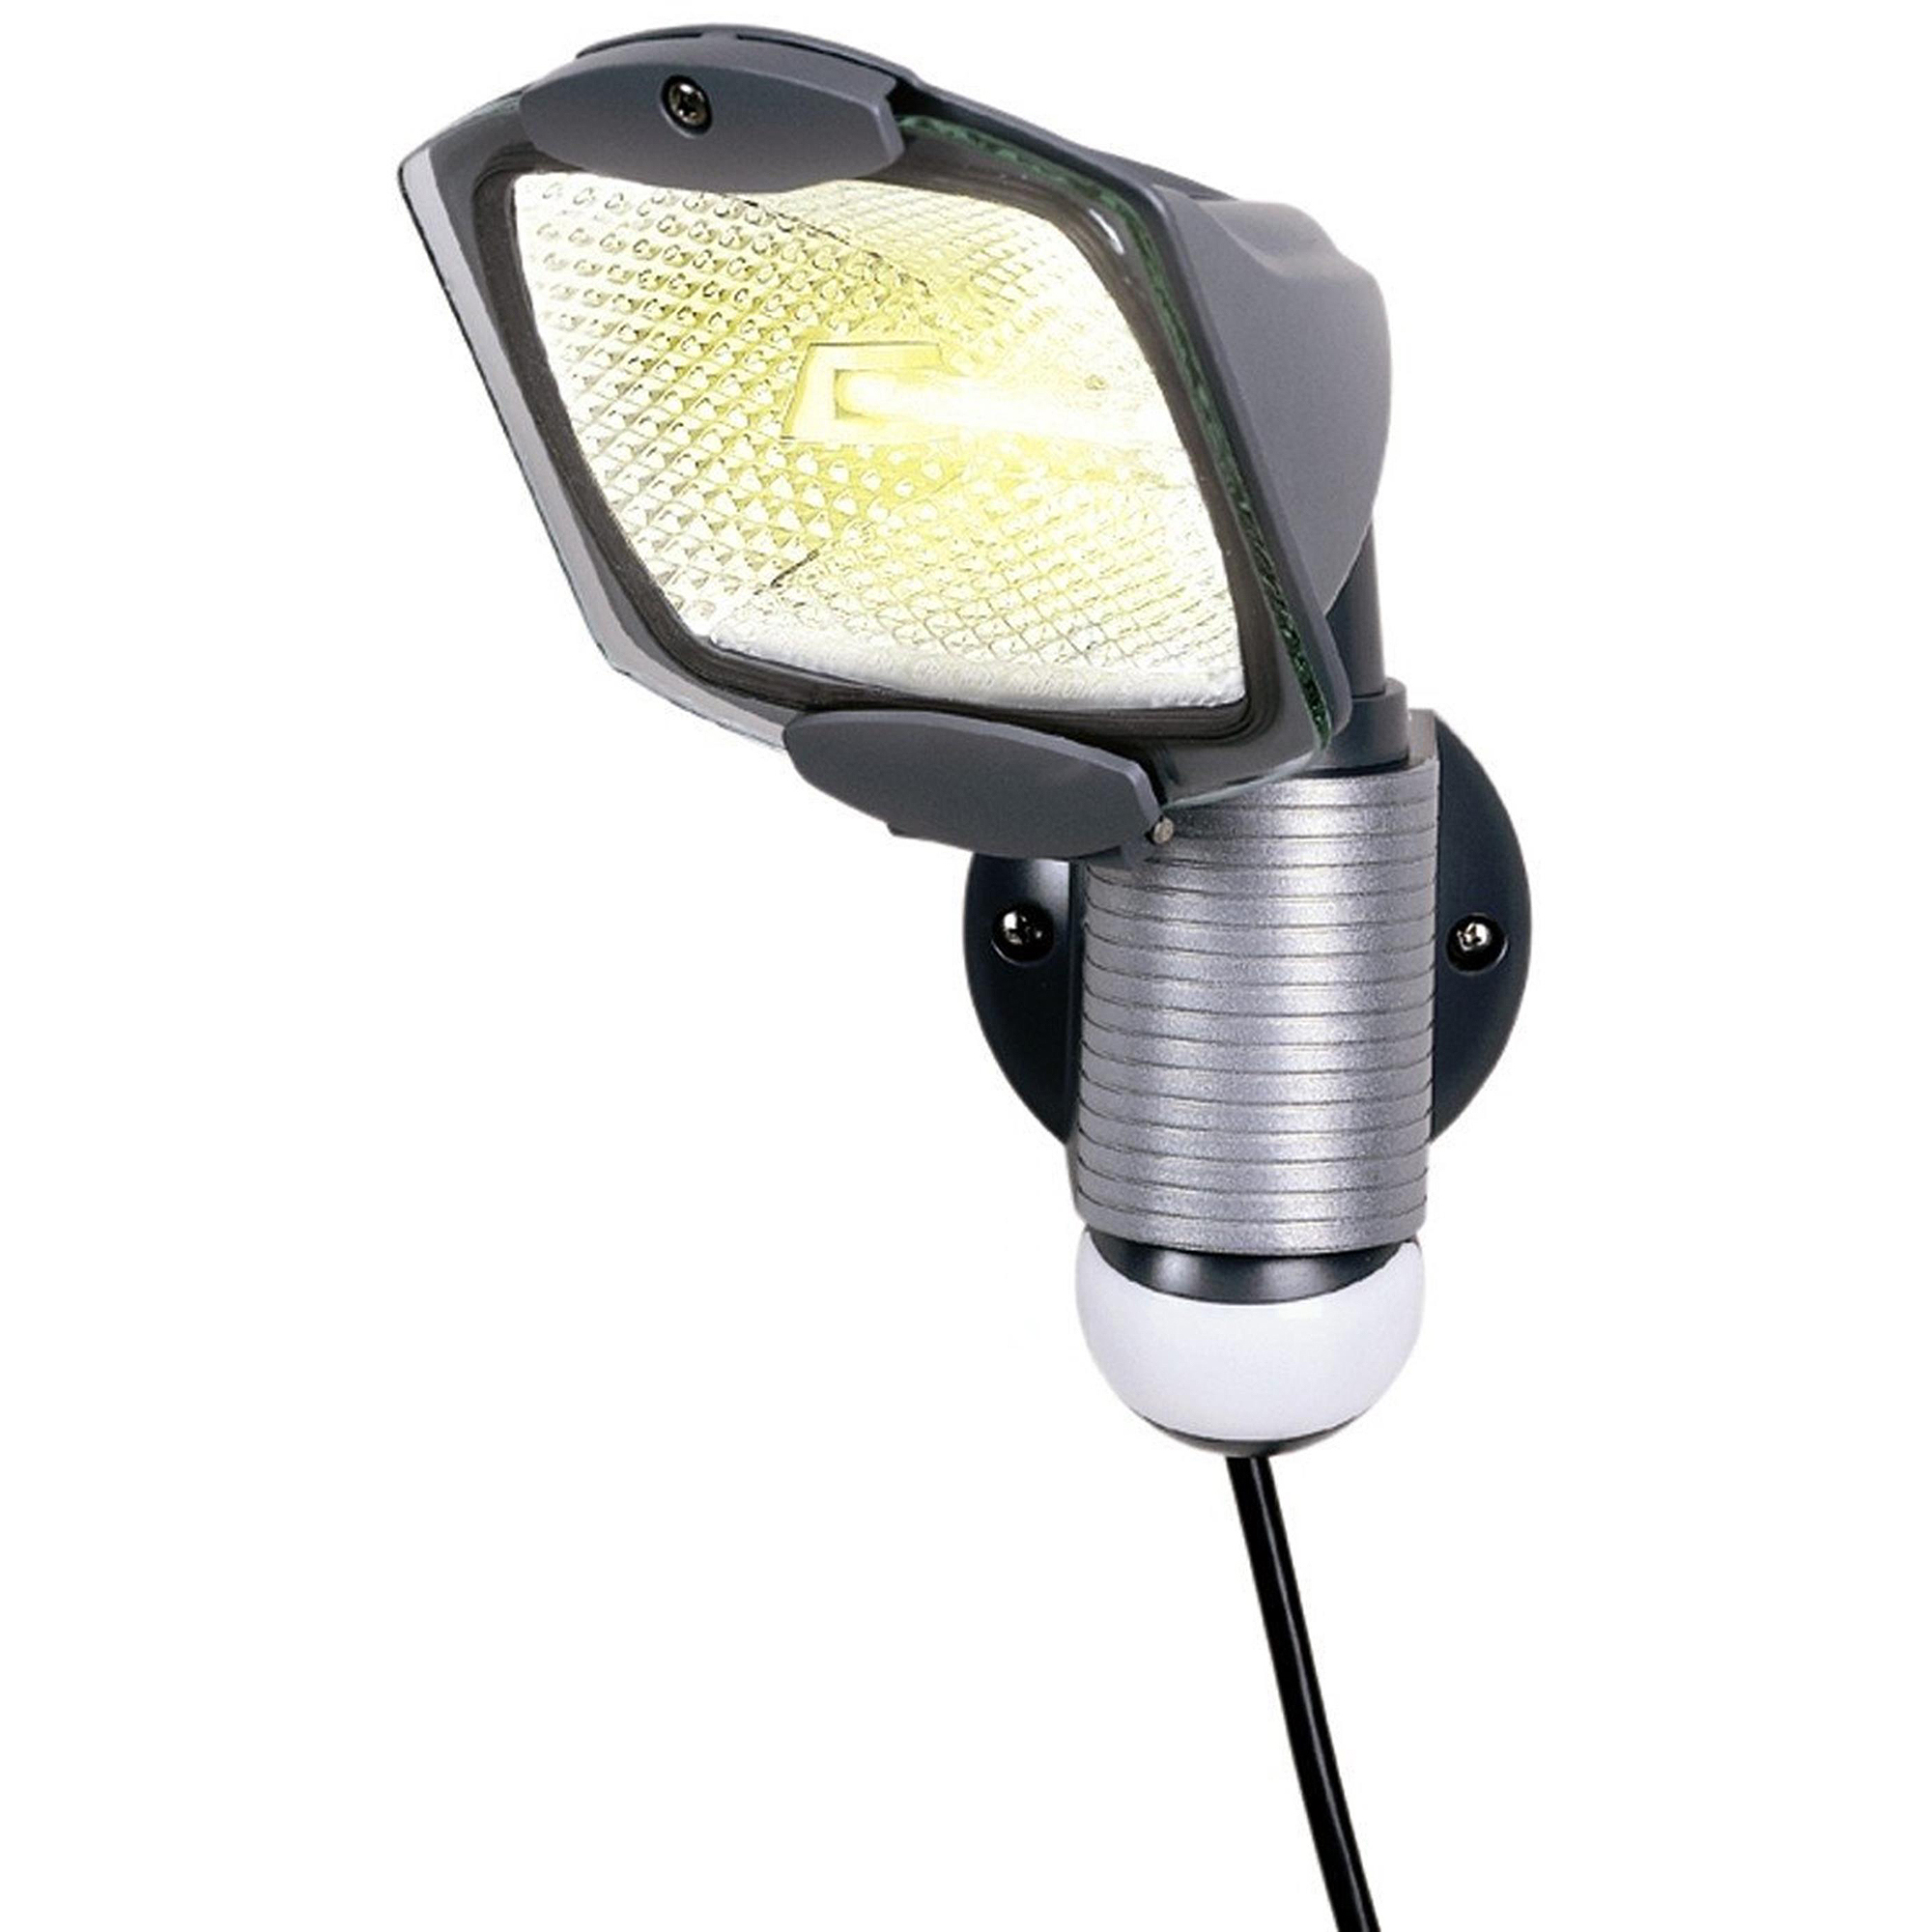 Cooper Lighting/Regent Light 100W Plug-In Motion-Activated Floodlight - Walmart.com  sc 1 st  Walmart & Cooper Lighting/Regent Light 100W Plug-In Motion-Activated ... azcodes.com